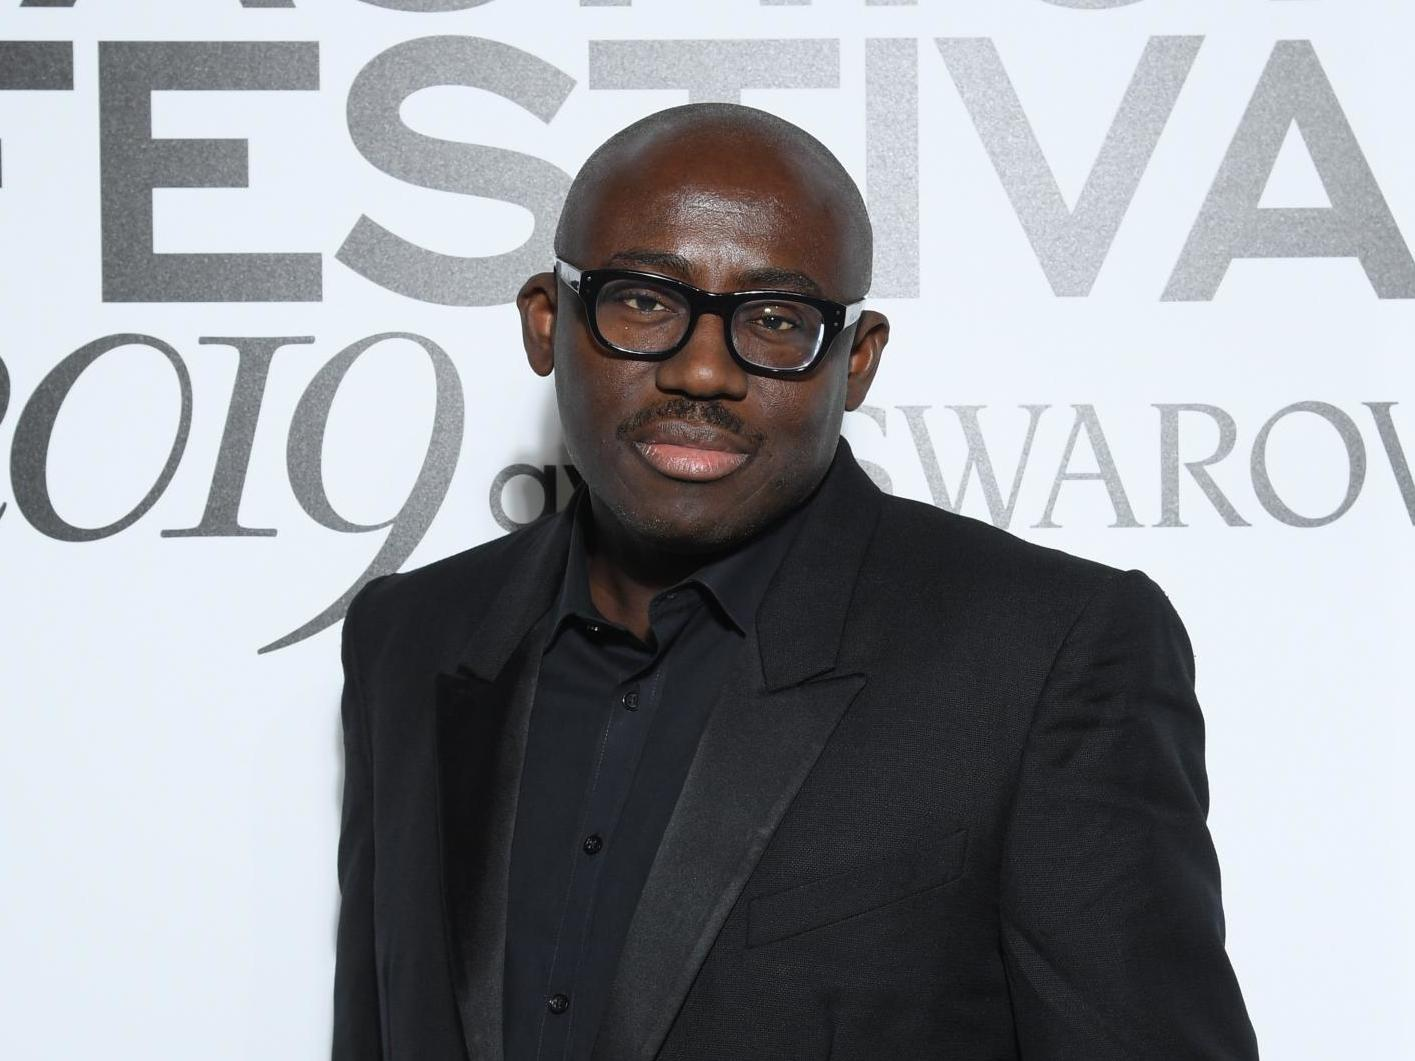 British Vogue editor Edward Enninful says magazine appeared 'stand-offish' and 'cold' before he took over